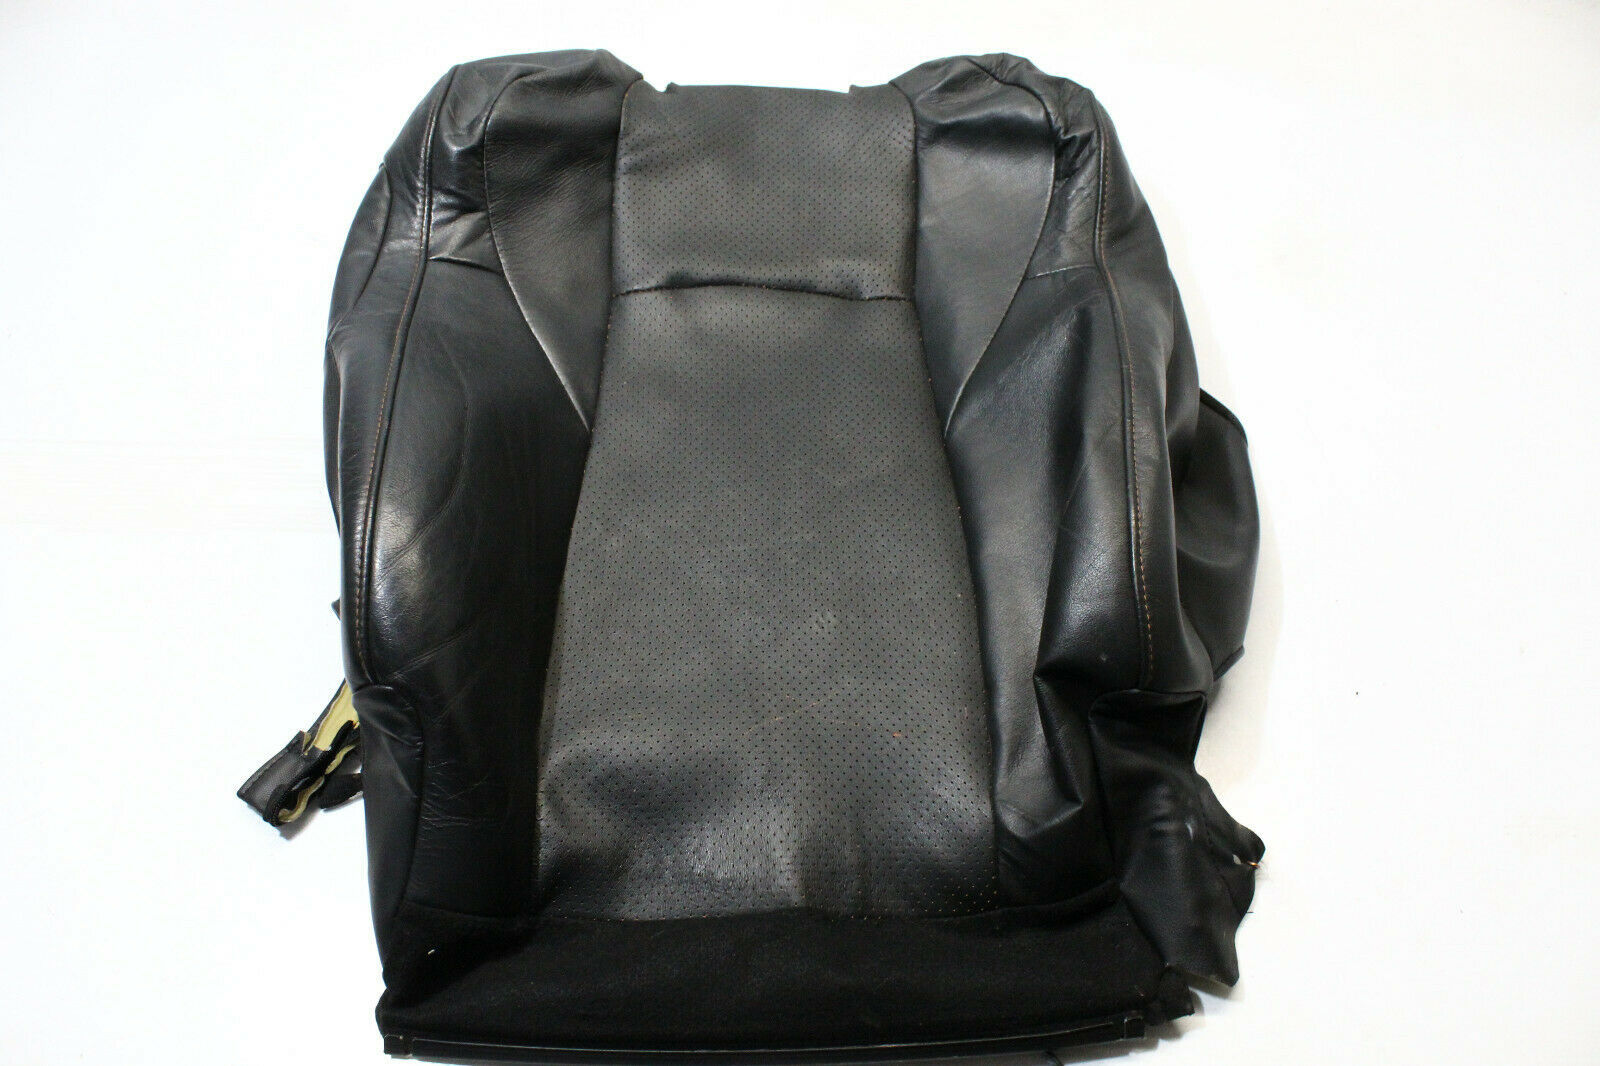 2004-2006 NISSAN 350Z ROADSTER FRONT RIGHT UPPER BACKREST SEAT COVER P3553 - $117.59